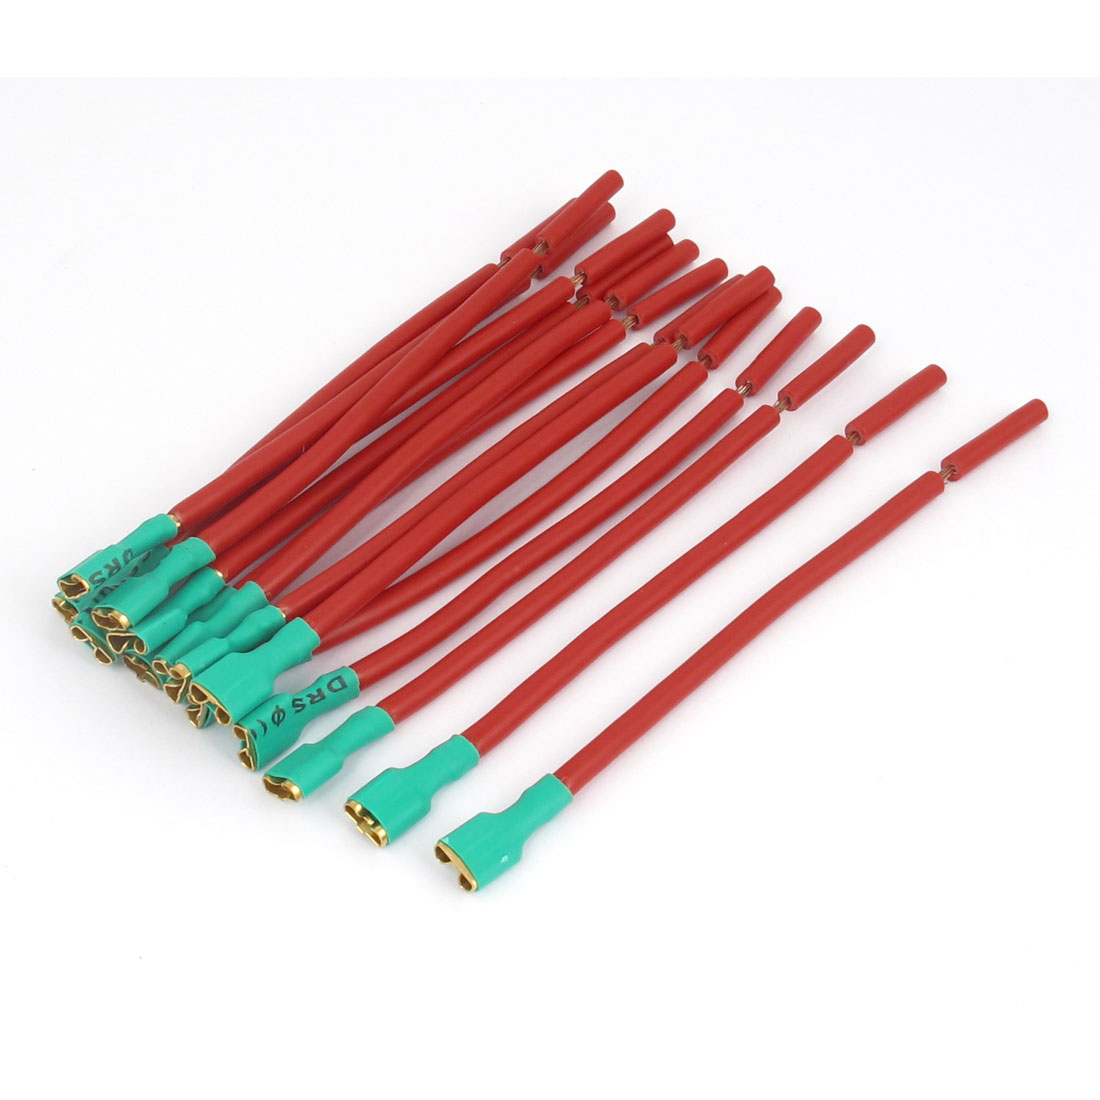 Motorcycle Car Speaker Insulation Terminal Cable Connector 13cm Length Red Green 15pcs